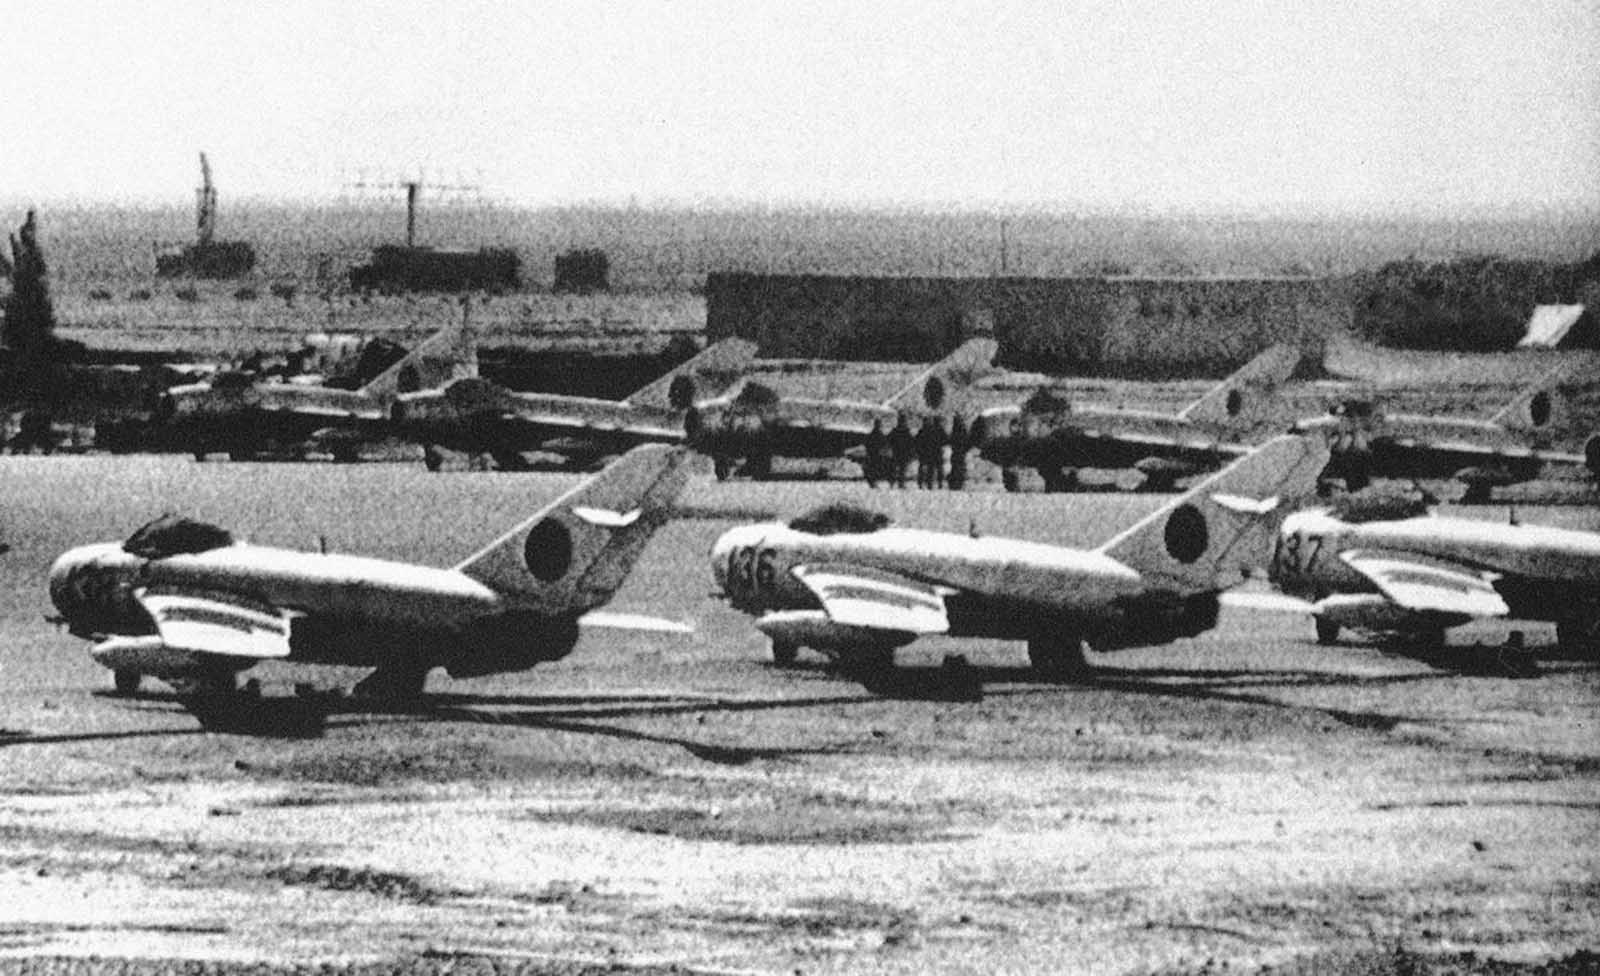 Russian-built Afghan MIG-17 jet fighters lined up at an airport in Kandahar, southwestern Afghanistan, on February 5, 1980.